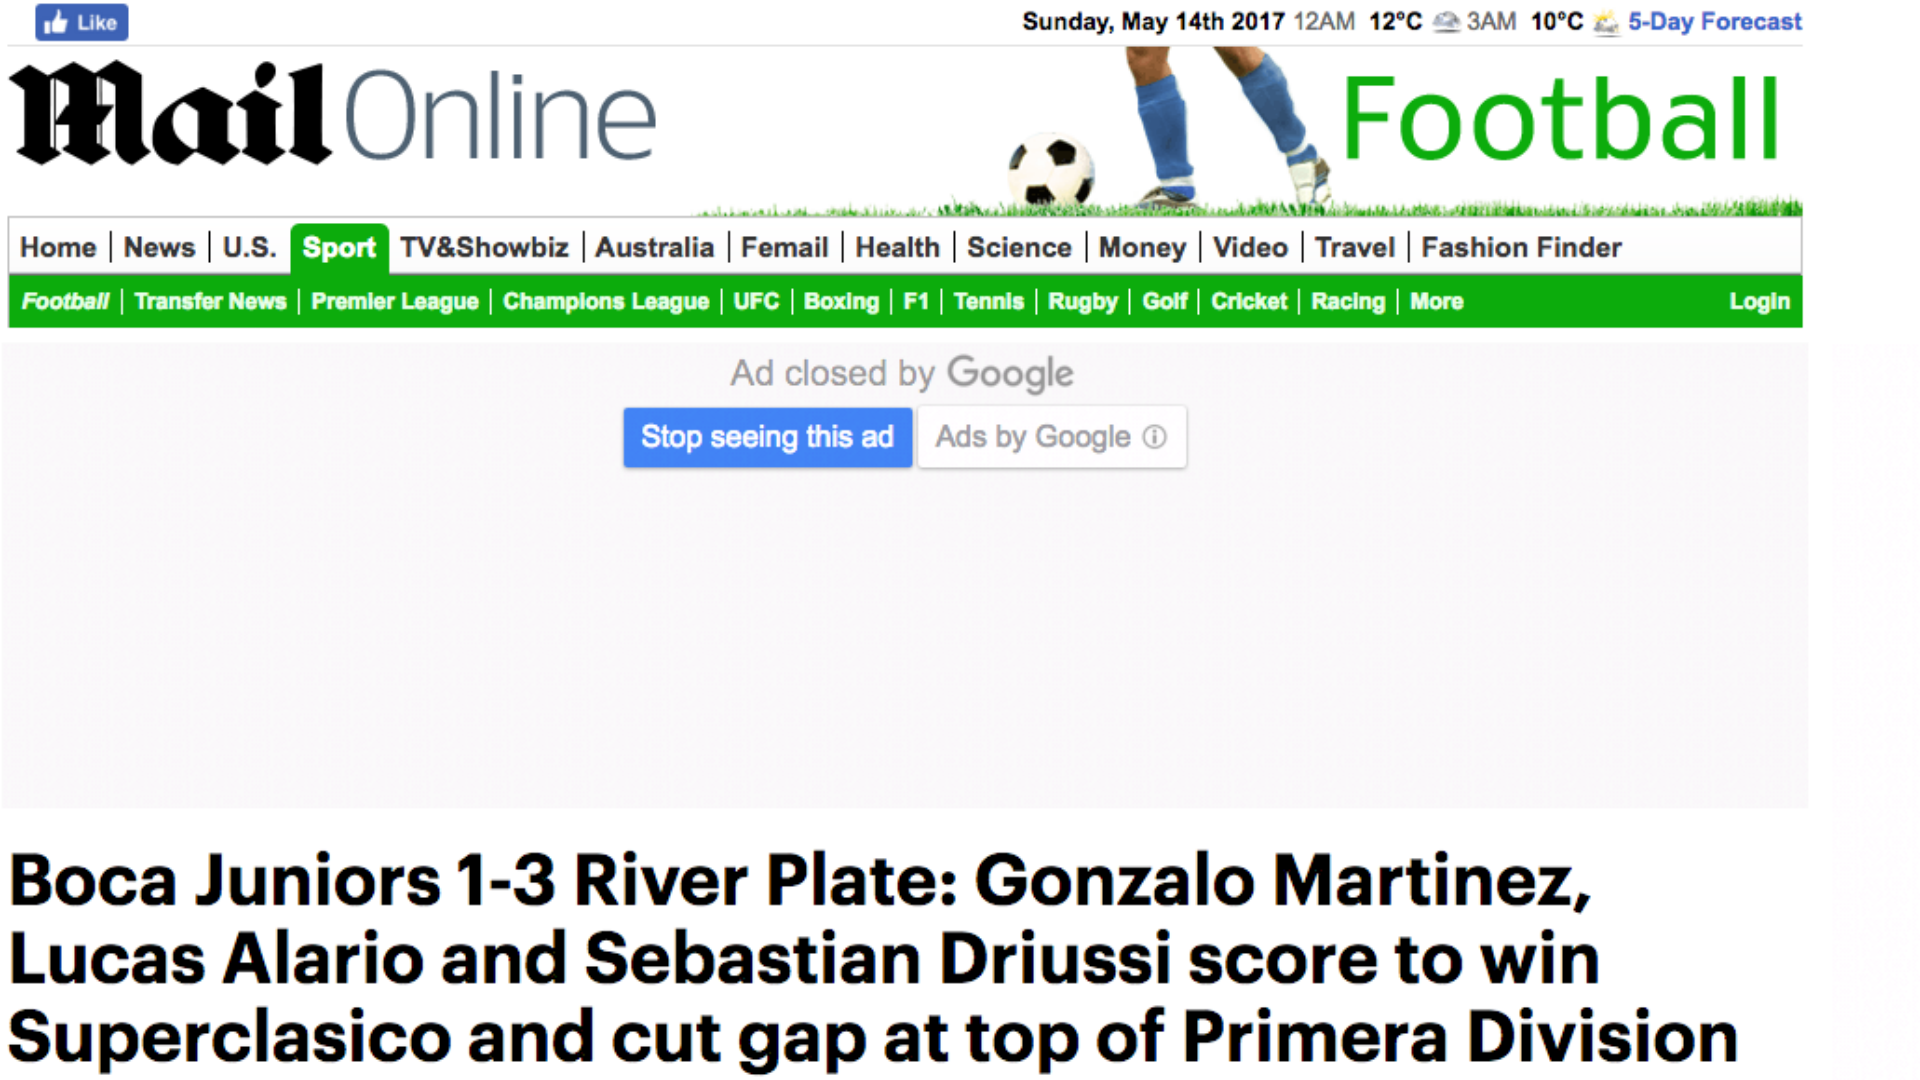 Daily Mail Superclasico